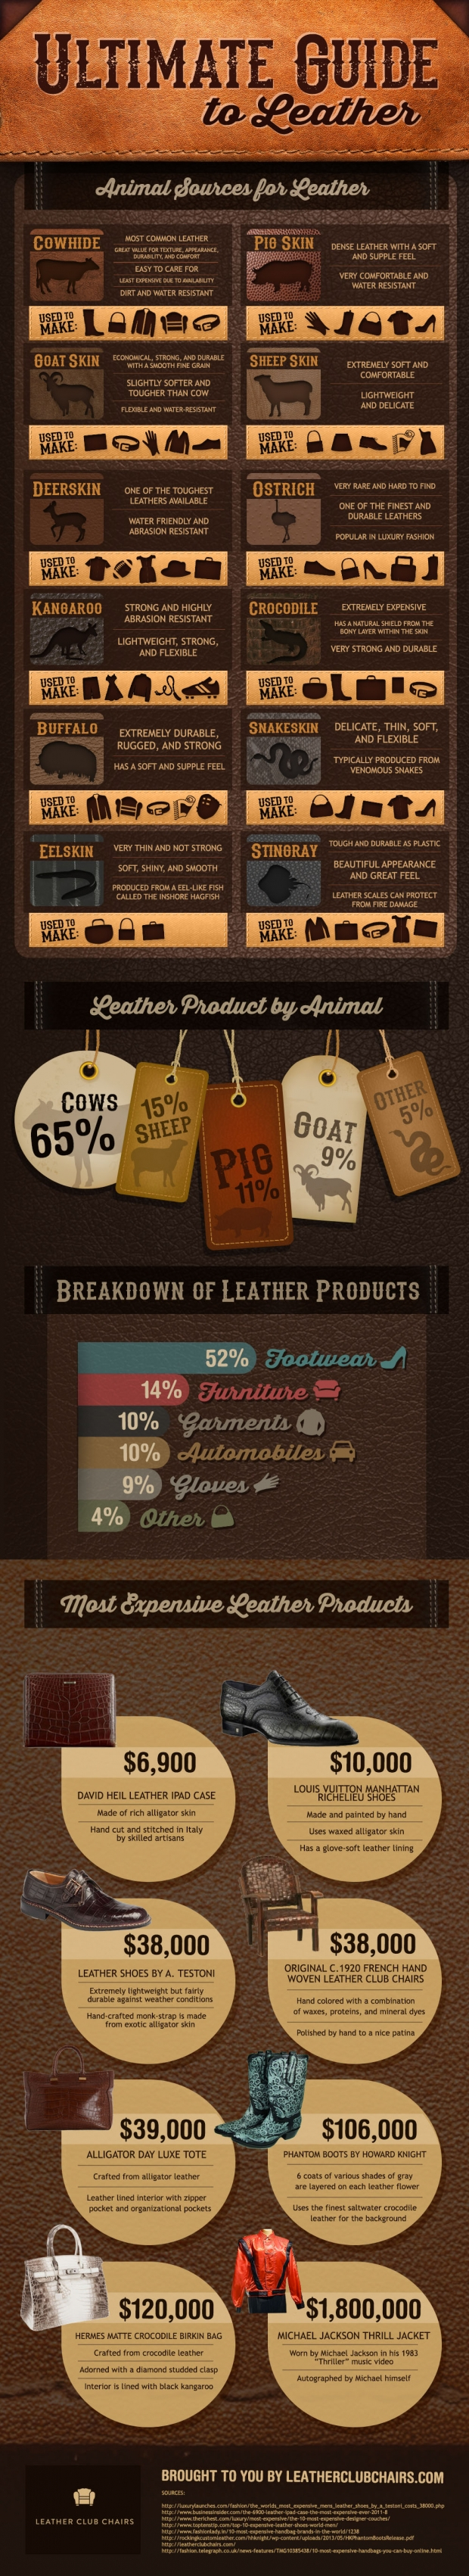 ultimate-guide-to-leather-infographic